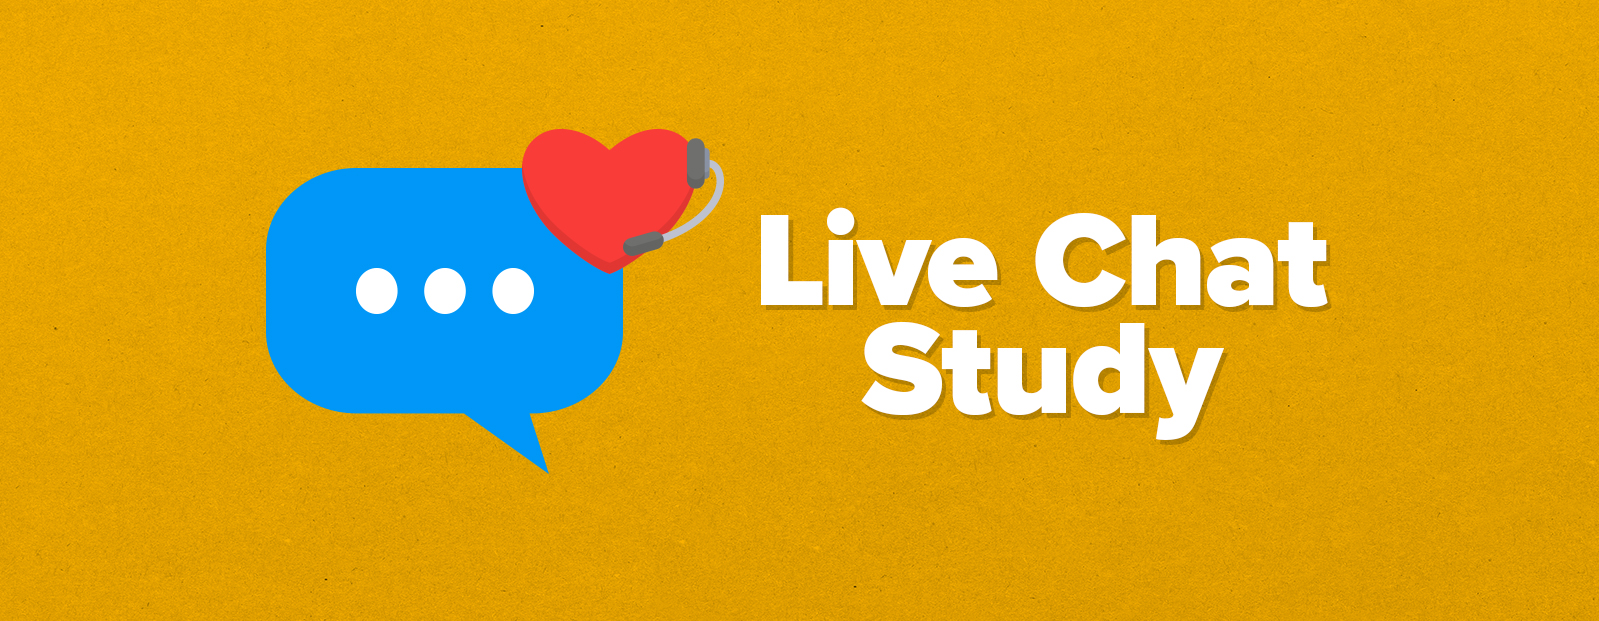 New Study: 21% of Companies Ignore Live Chat Support Requests